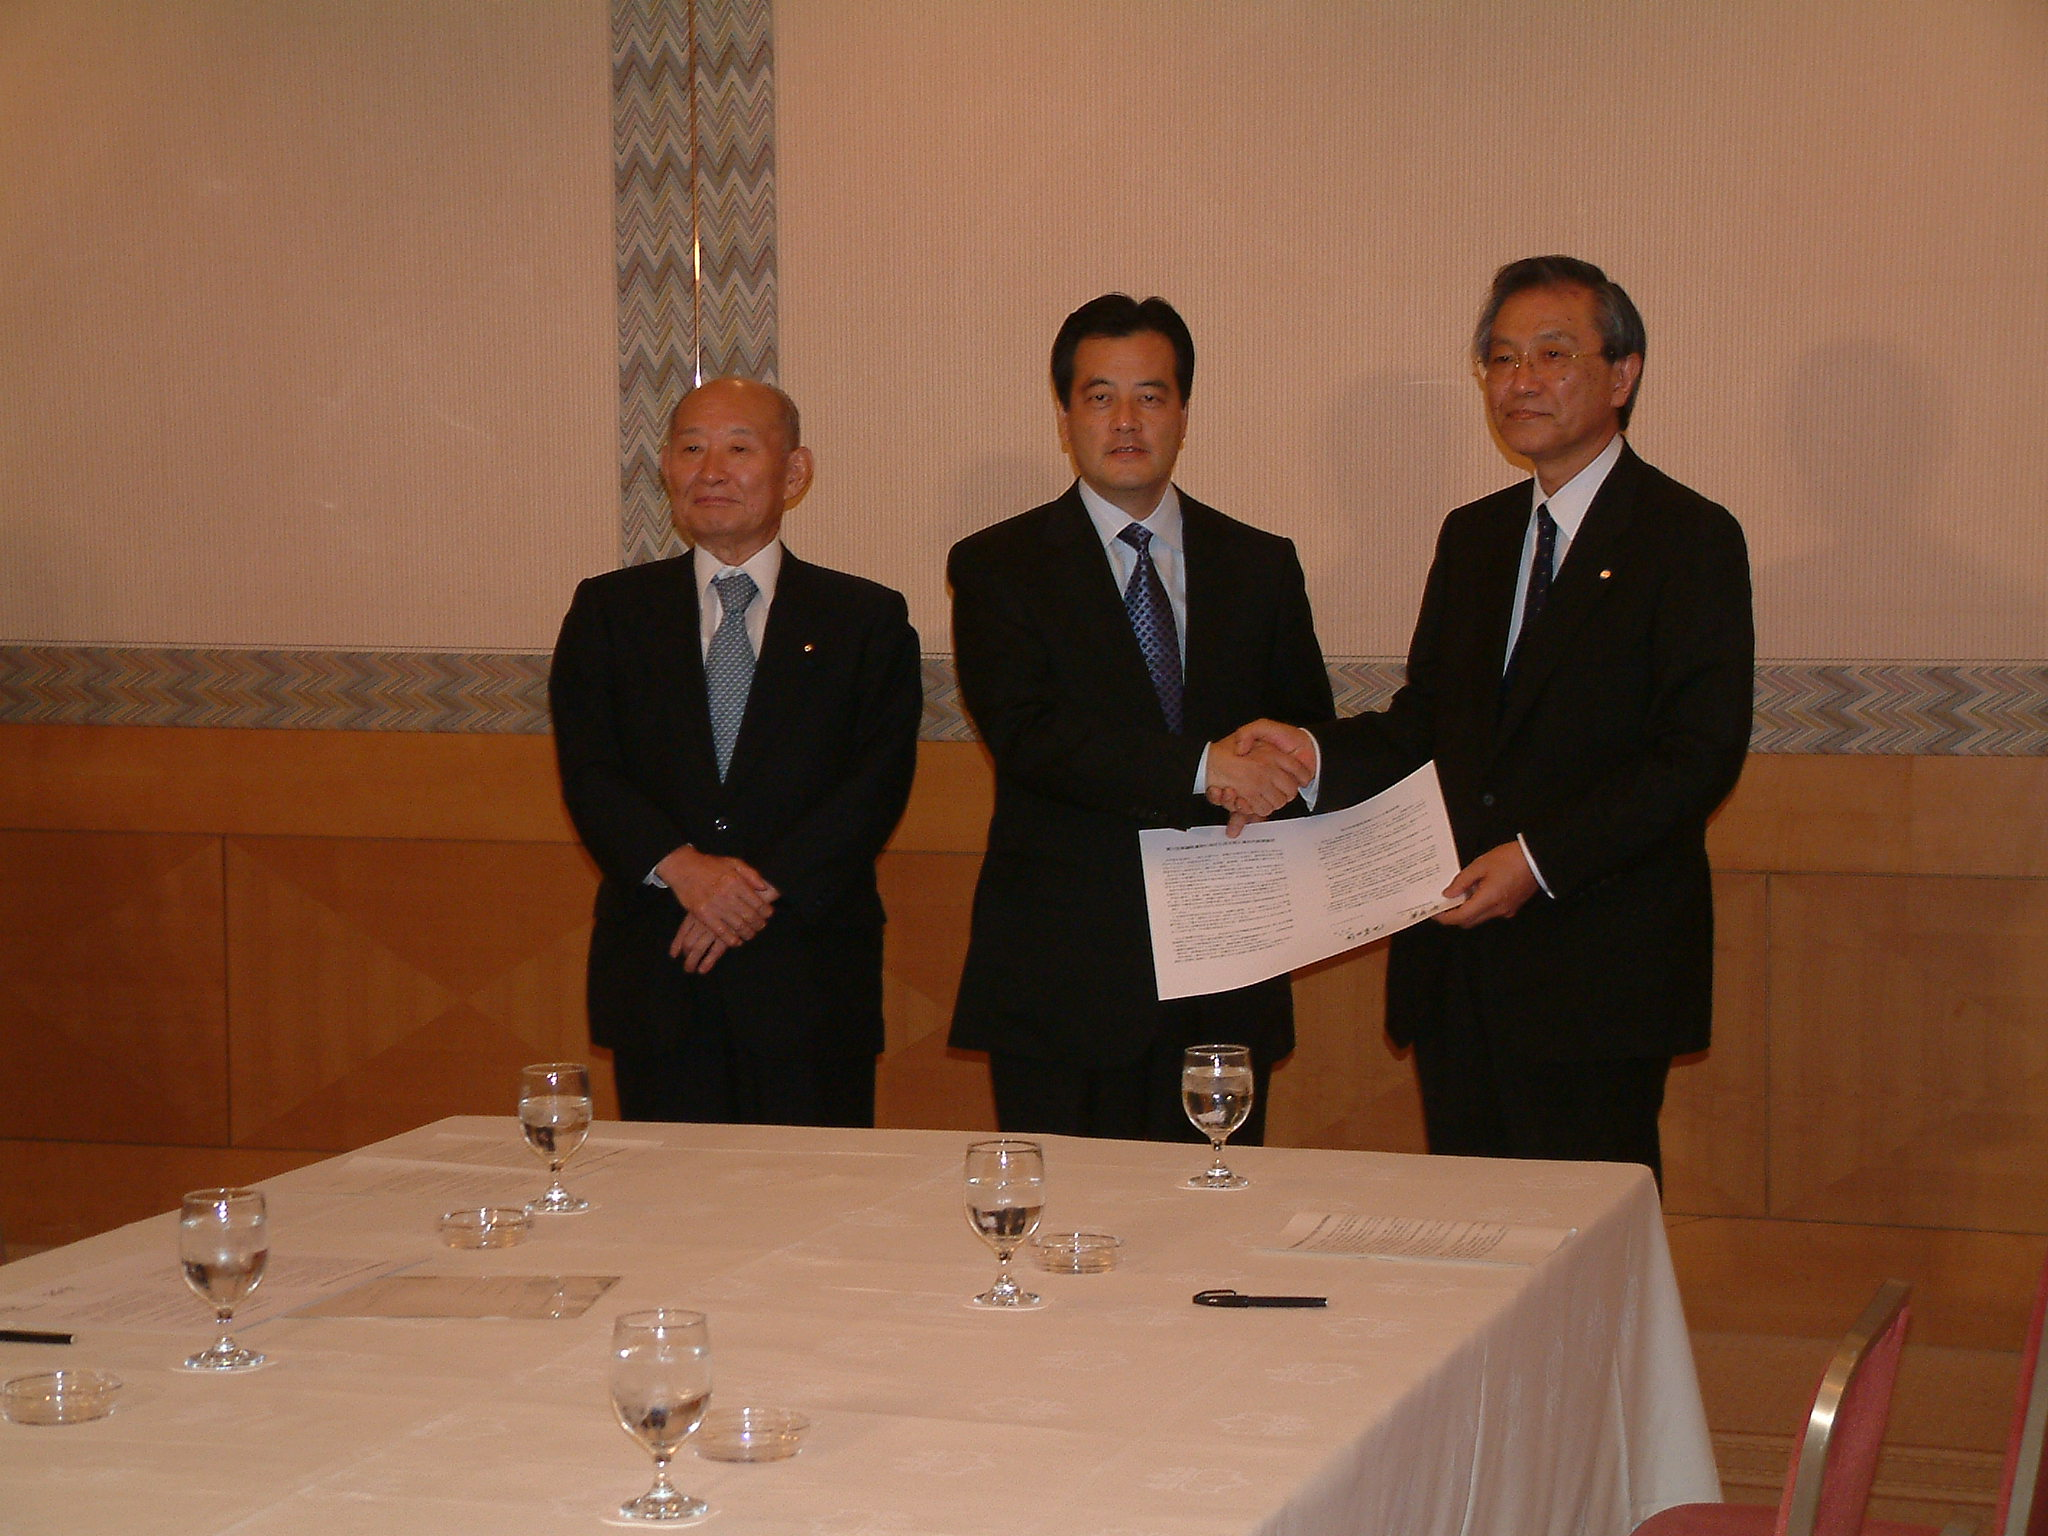 Photo: President Sasamori (right) firmly shaking hands with President Okada of the DPJ.